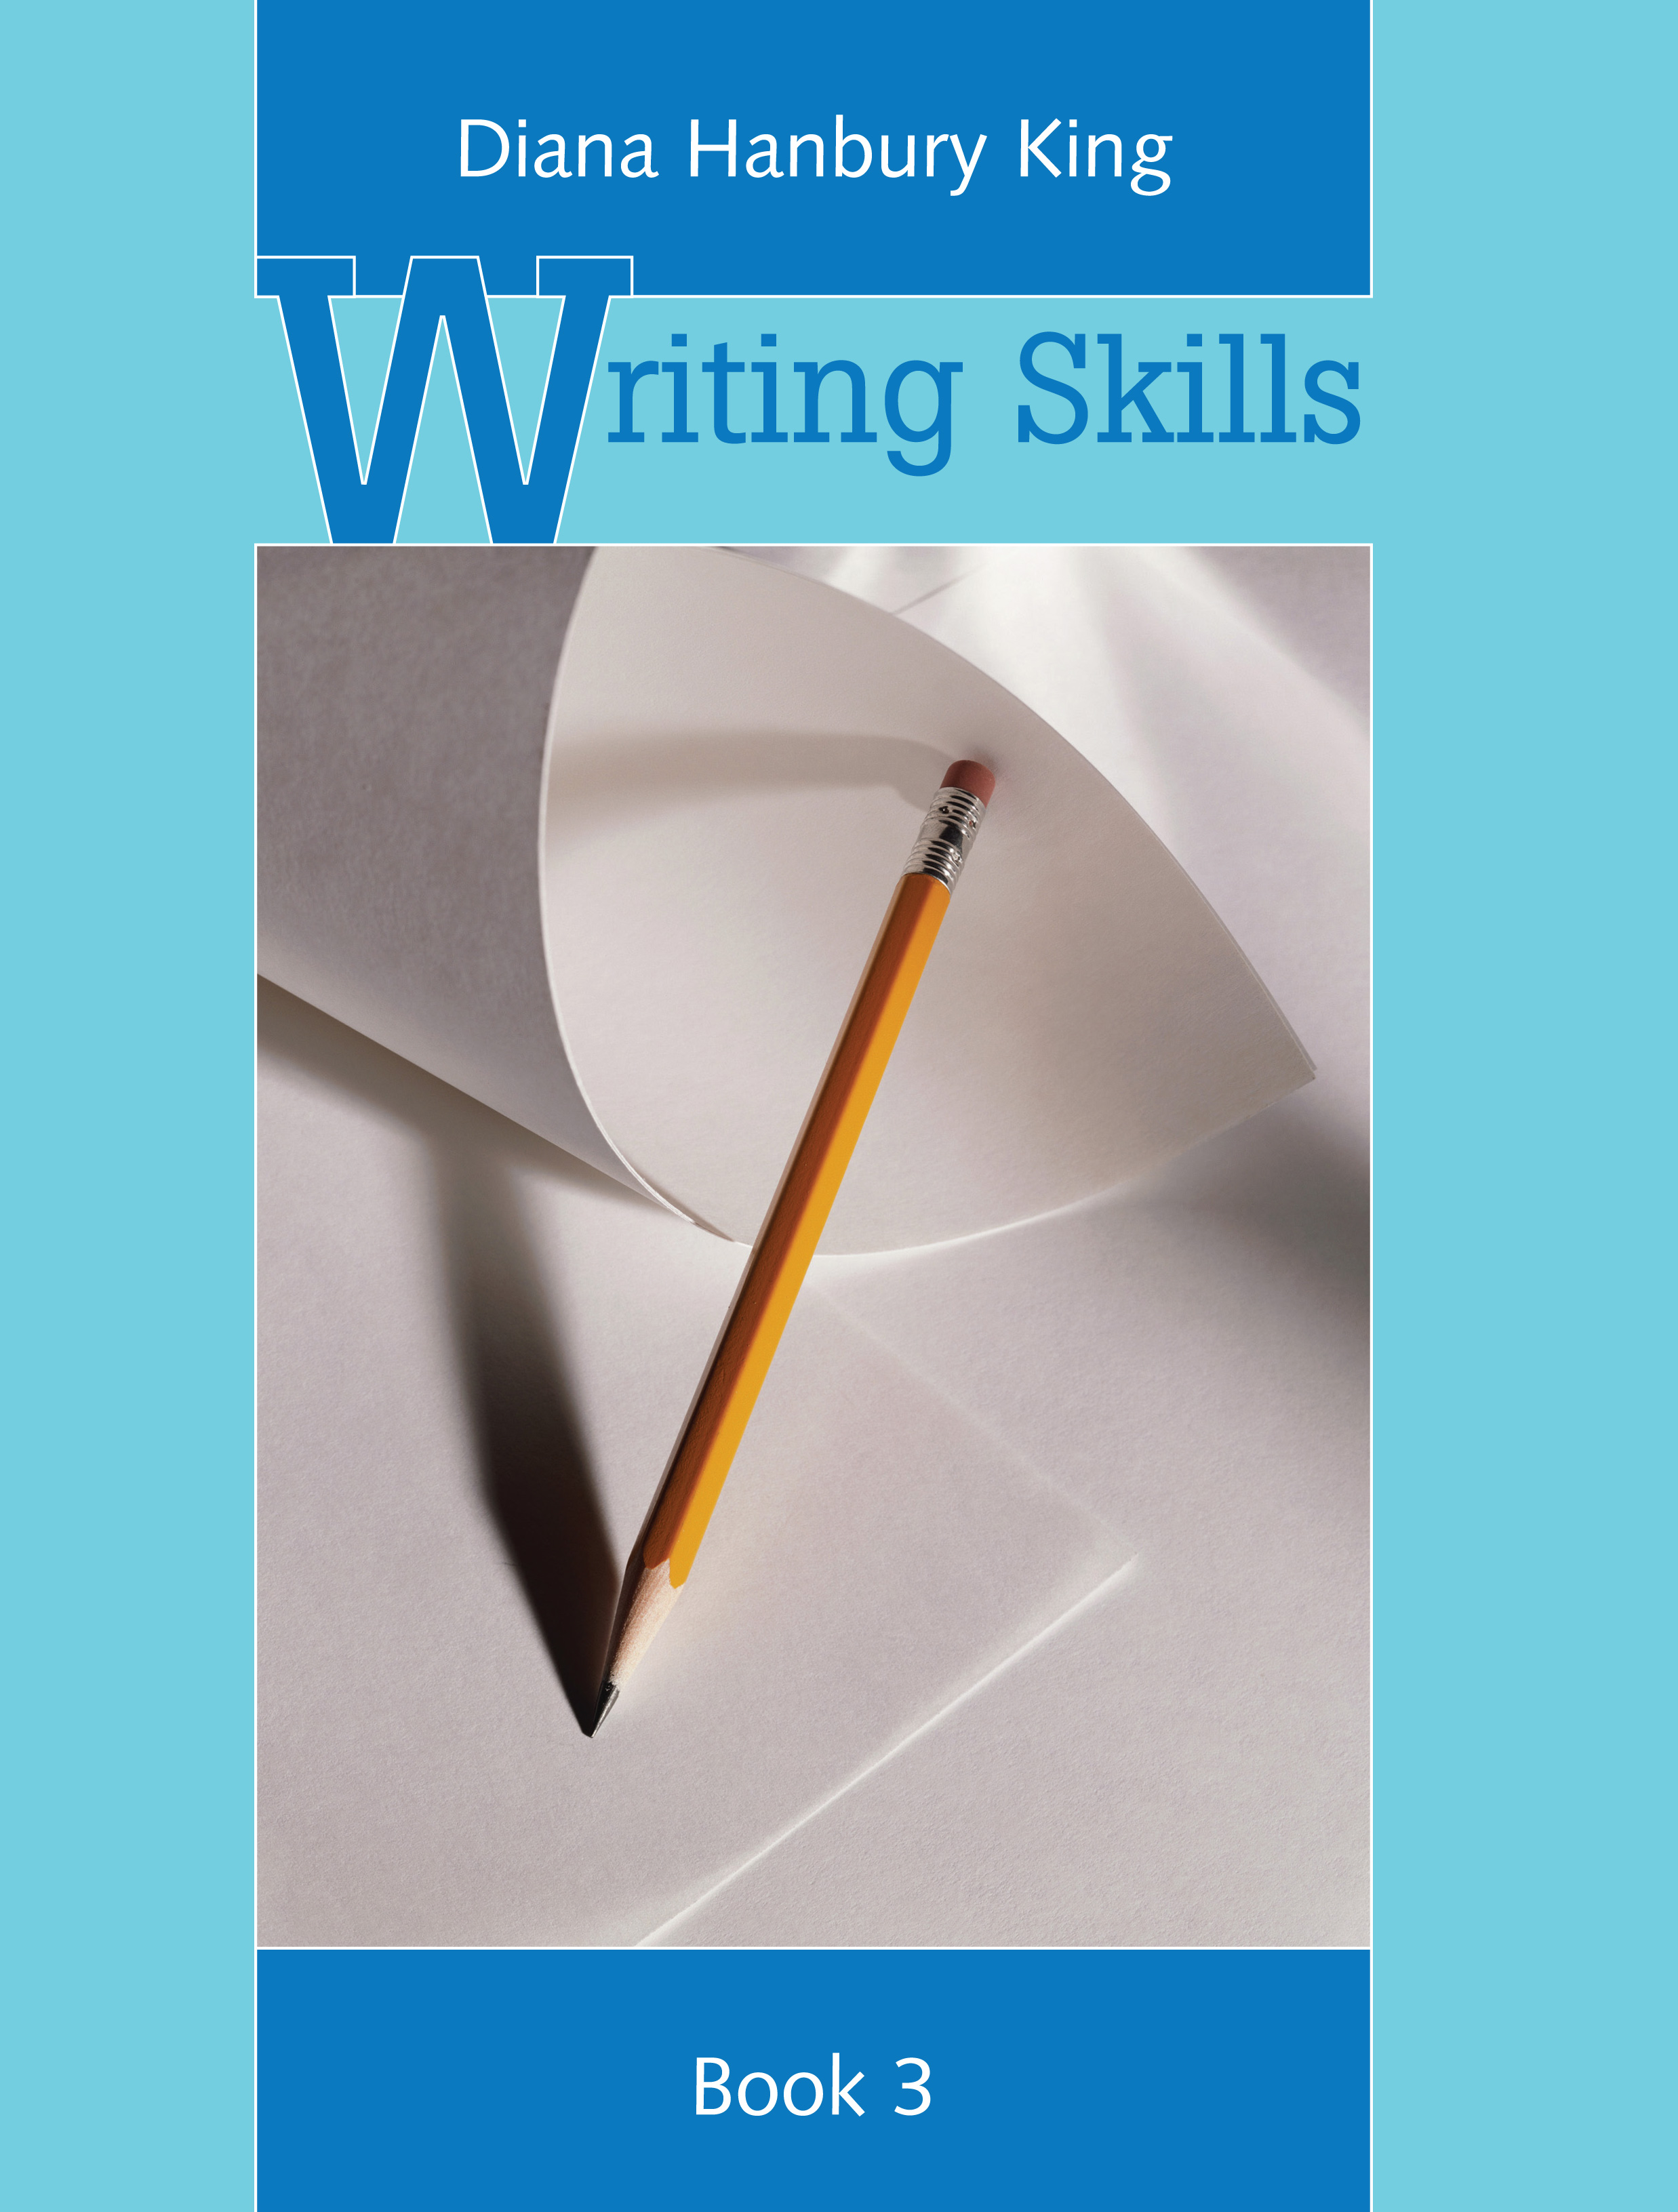 paper writing skills Professional custom writing it's a 100% legal way of getting professional assistance with paper writing the chances of students to boost writing skills in.